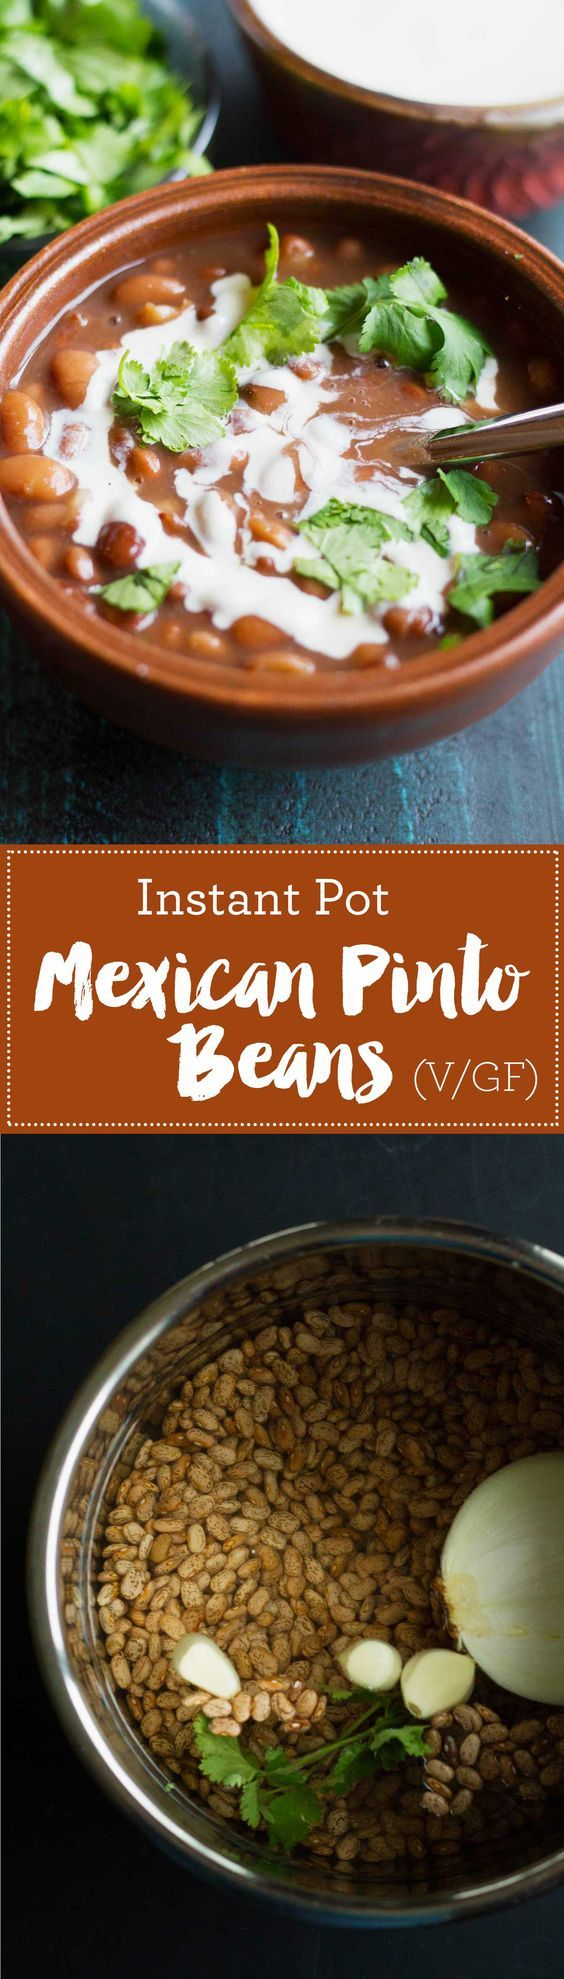 Instant Pot Mexican Pinto Beans (Vegan) | Plant-based | Beans | http://www.eatwithinyourmeans.com/ via @eatwithinmeans